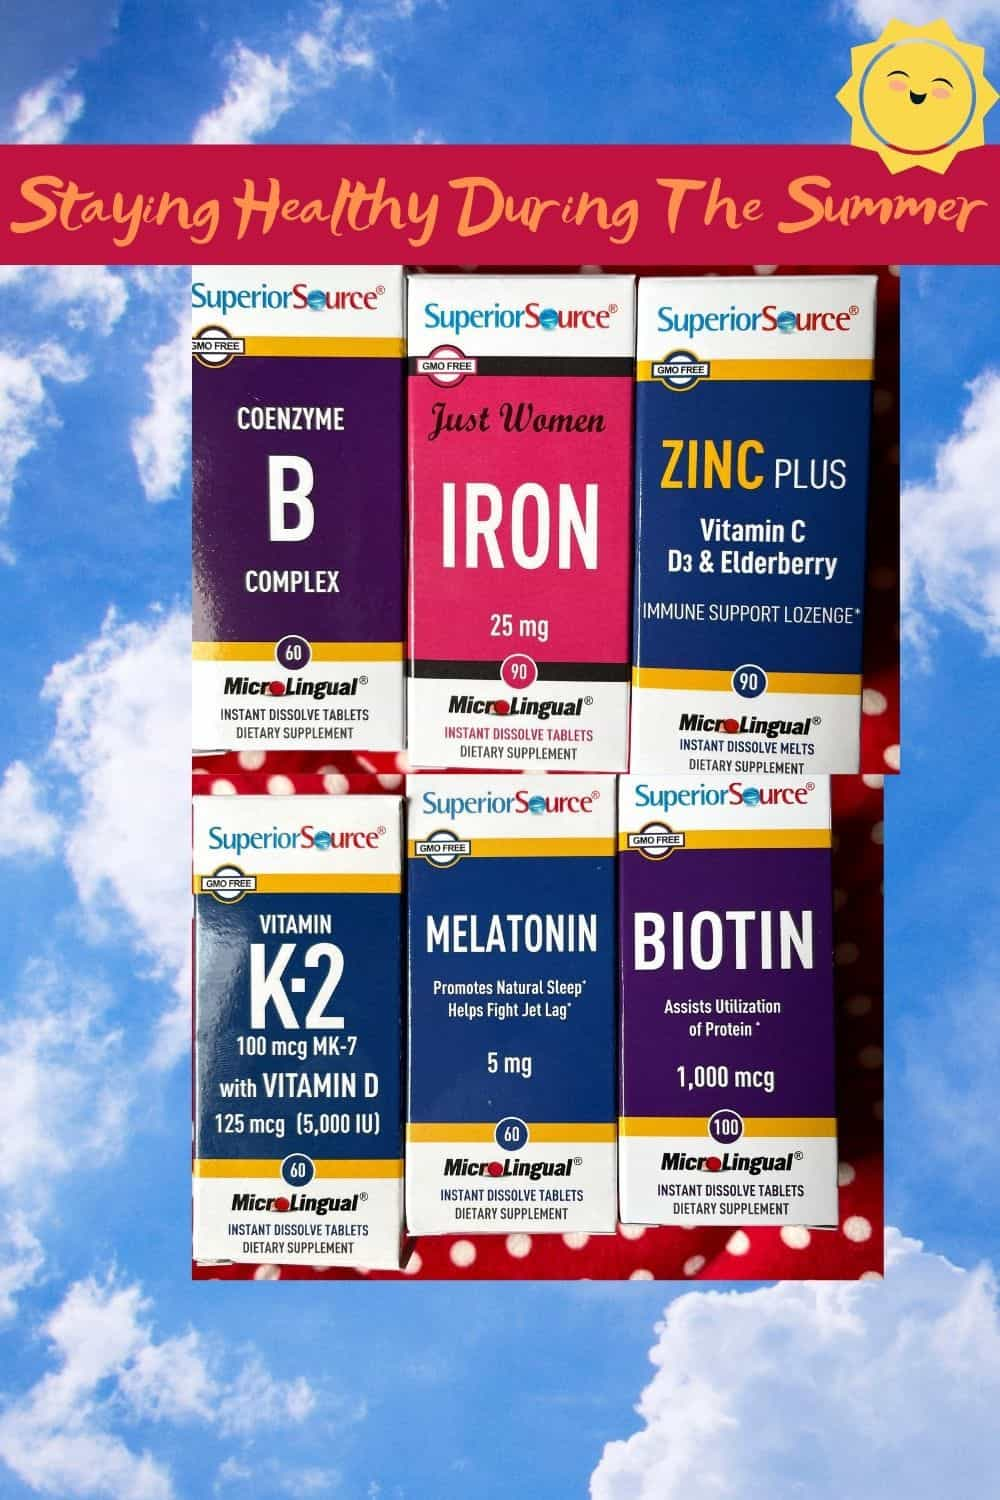 All Supplements for Superior Source staying healthy during the summer